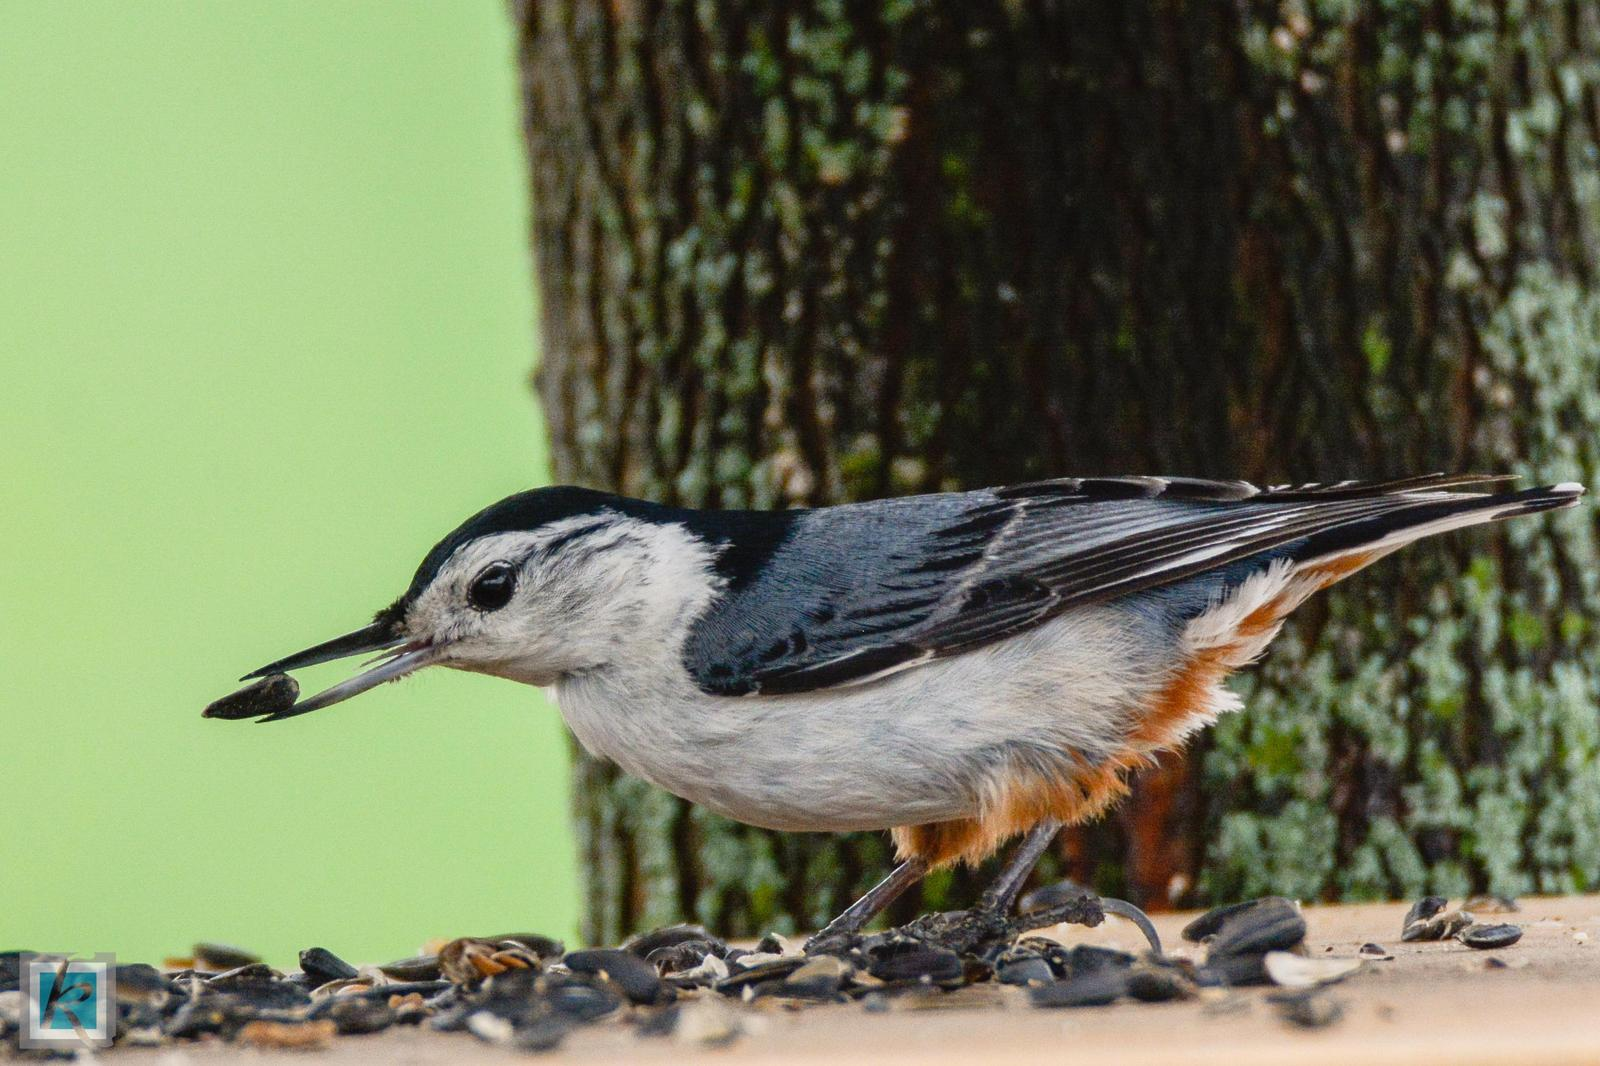 White-breasted Nuthatch Photo by Tyson Kahler